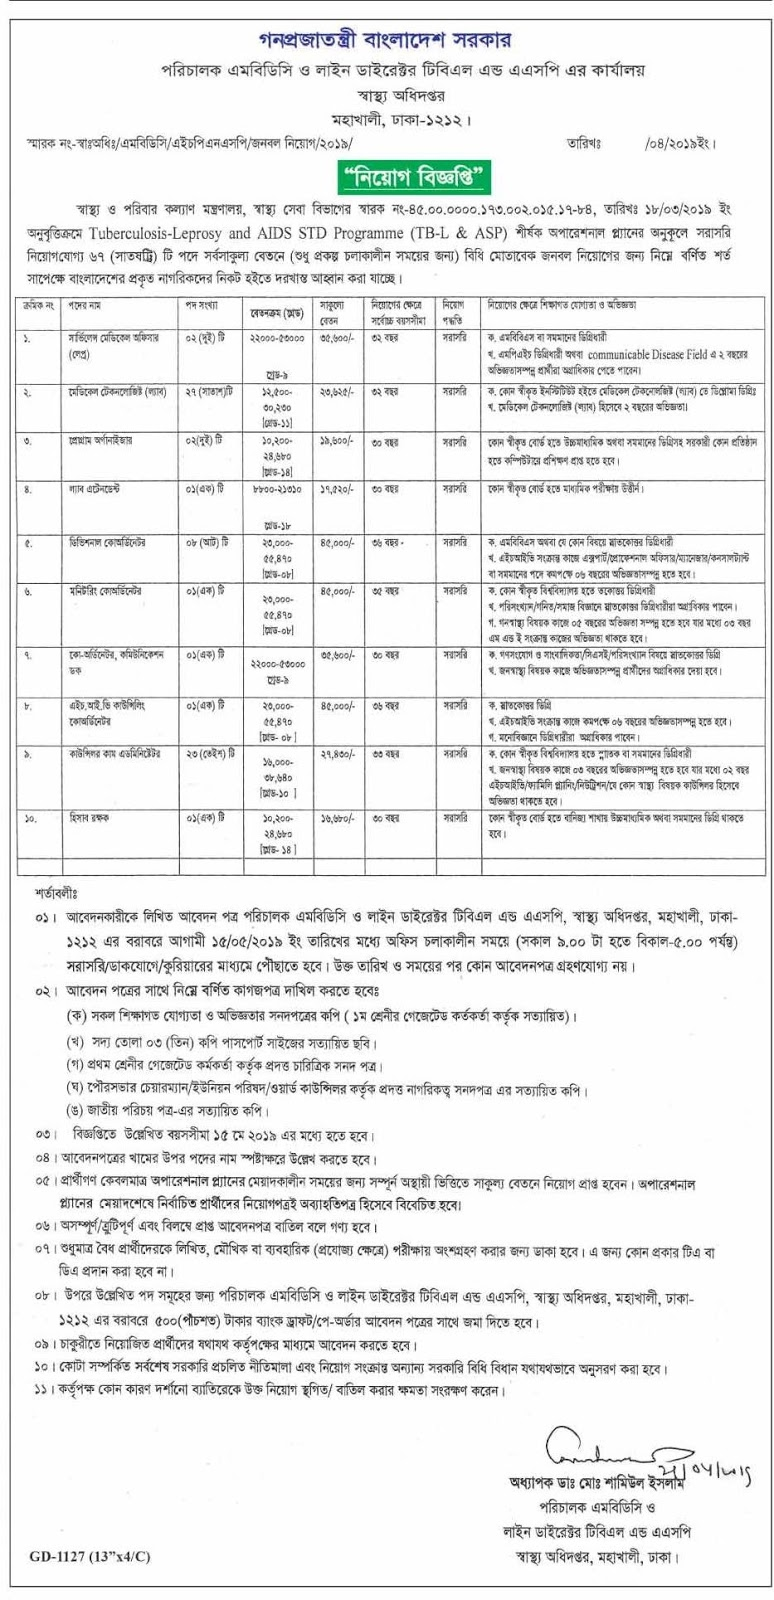 Ministry of Health and Family Welfare Job Circular 2019